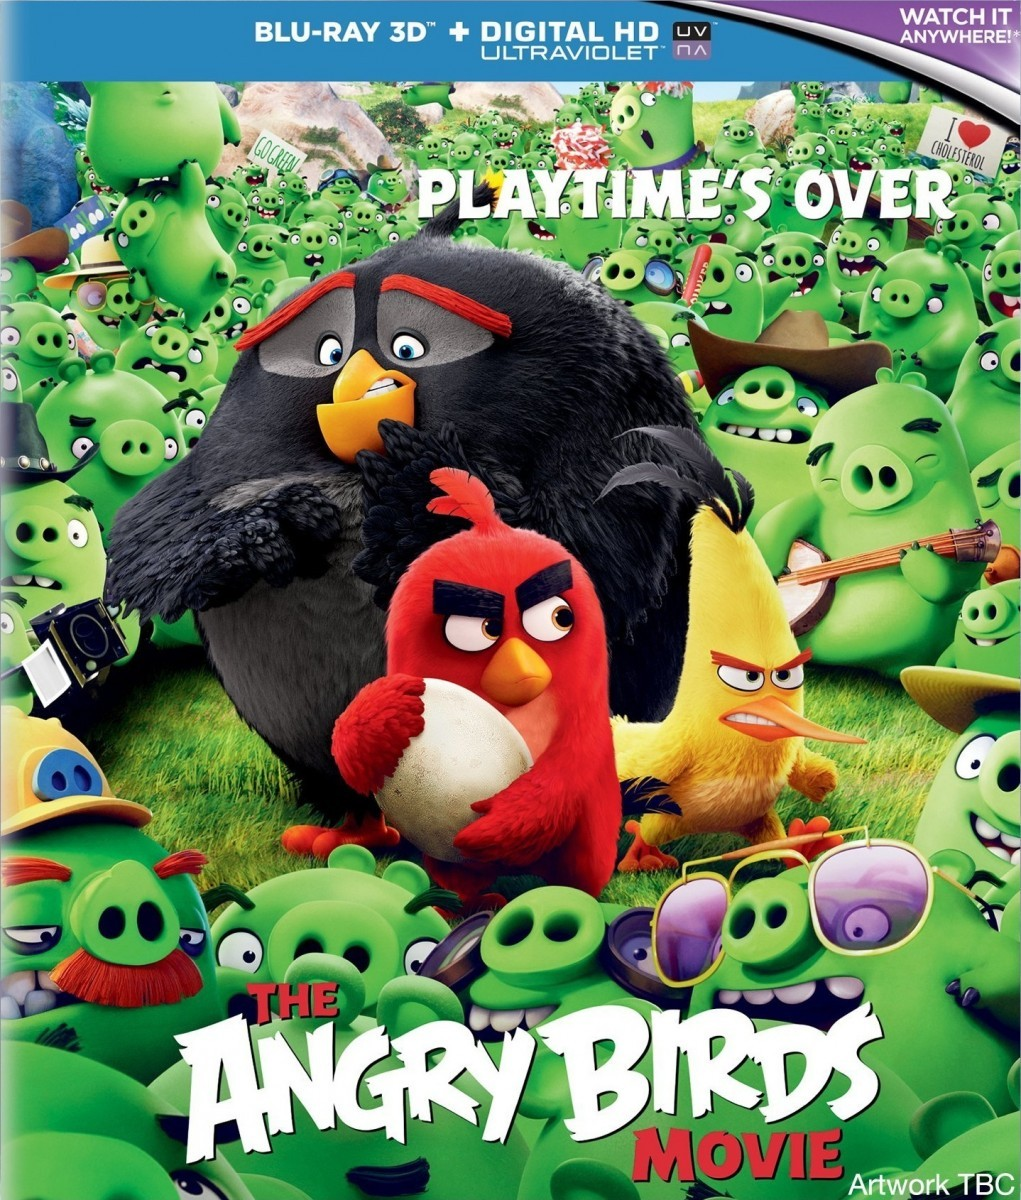 The Angry Birds Movie 3D Blu-Ray+Blu-Ray - 10226713